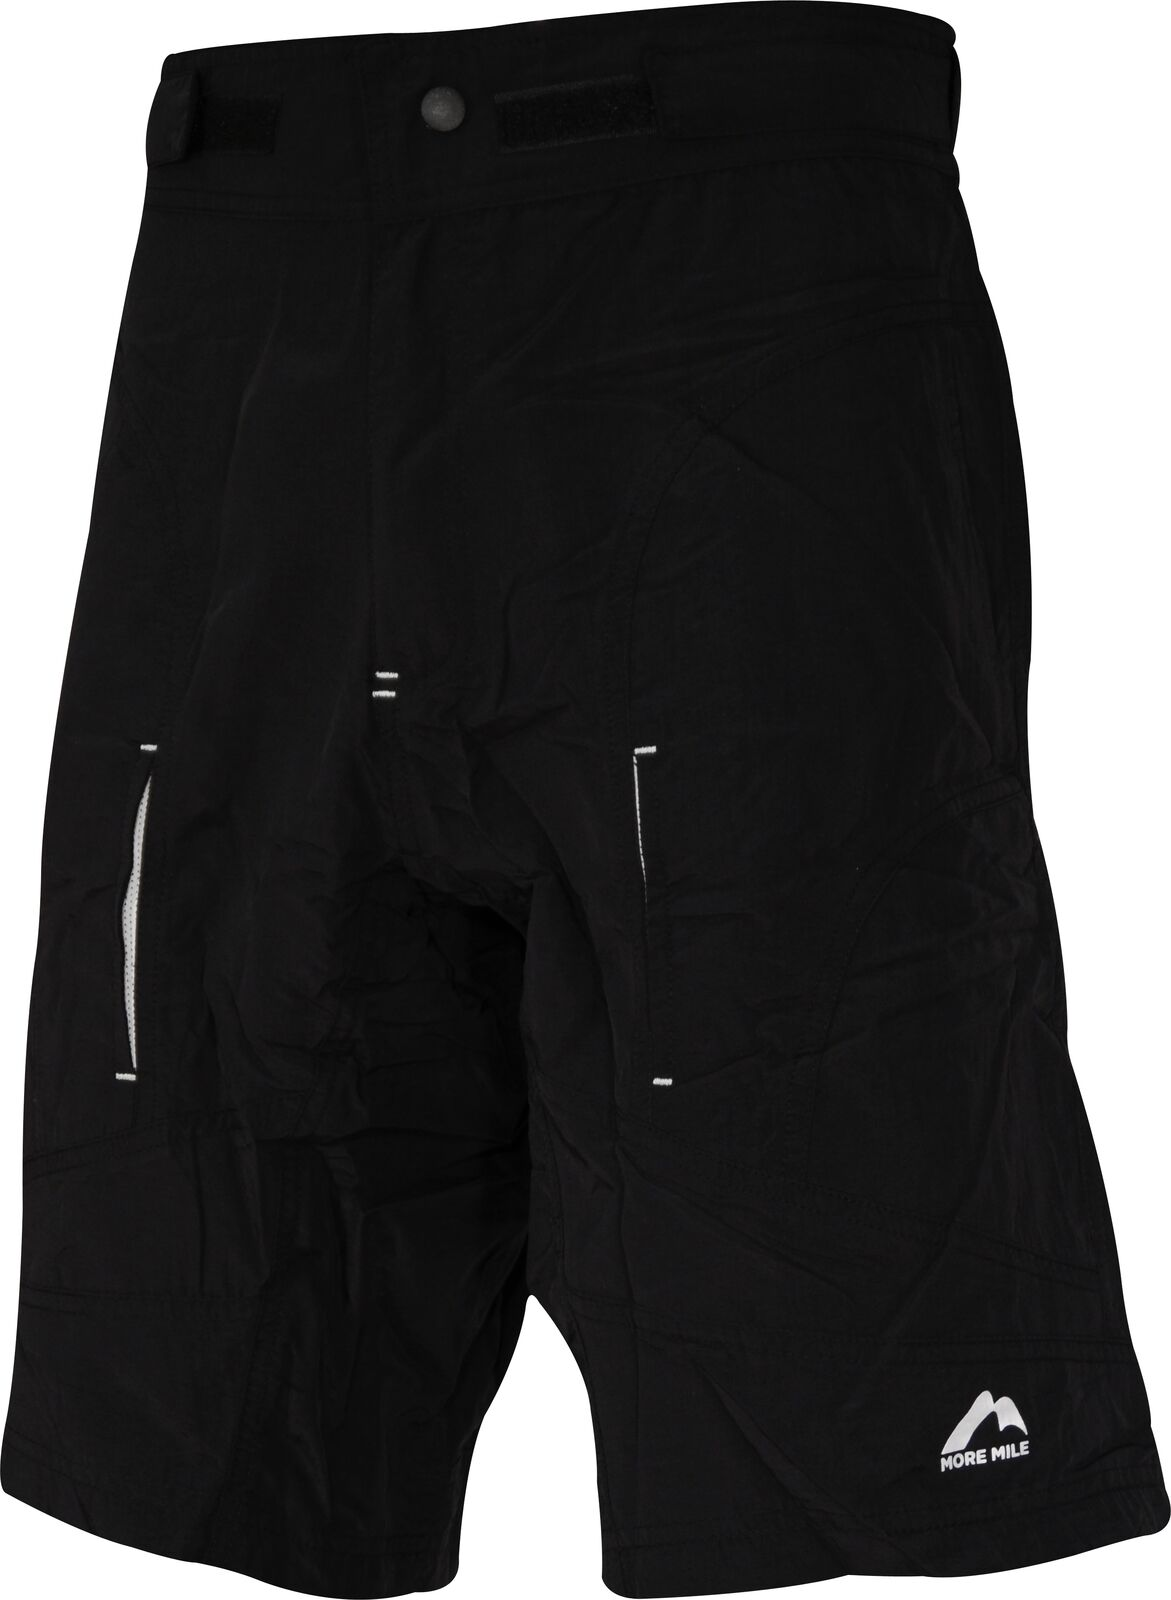 More Mile 2 in 1 Baggy Cycle Short